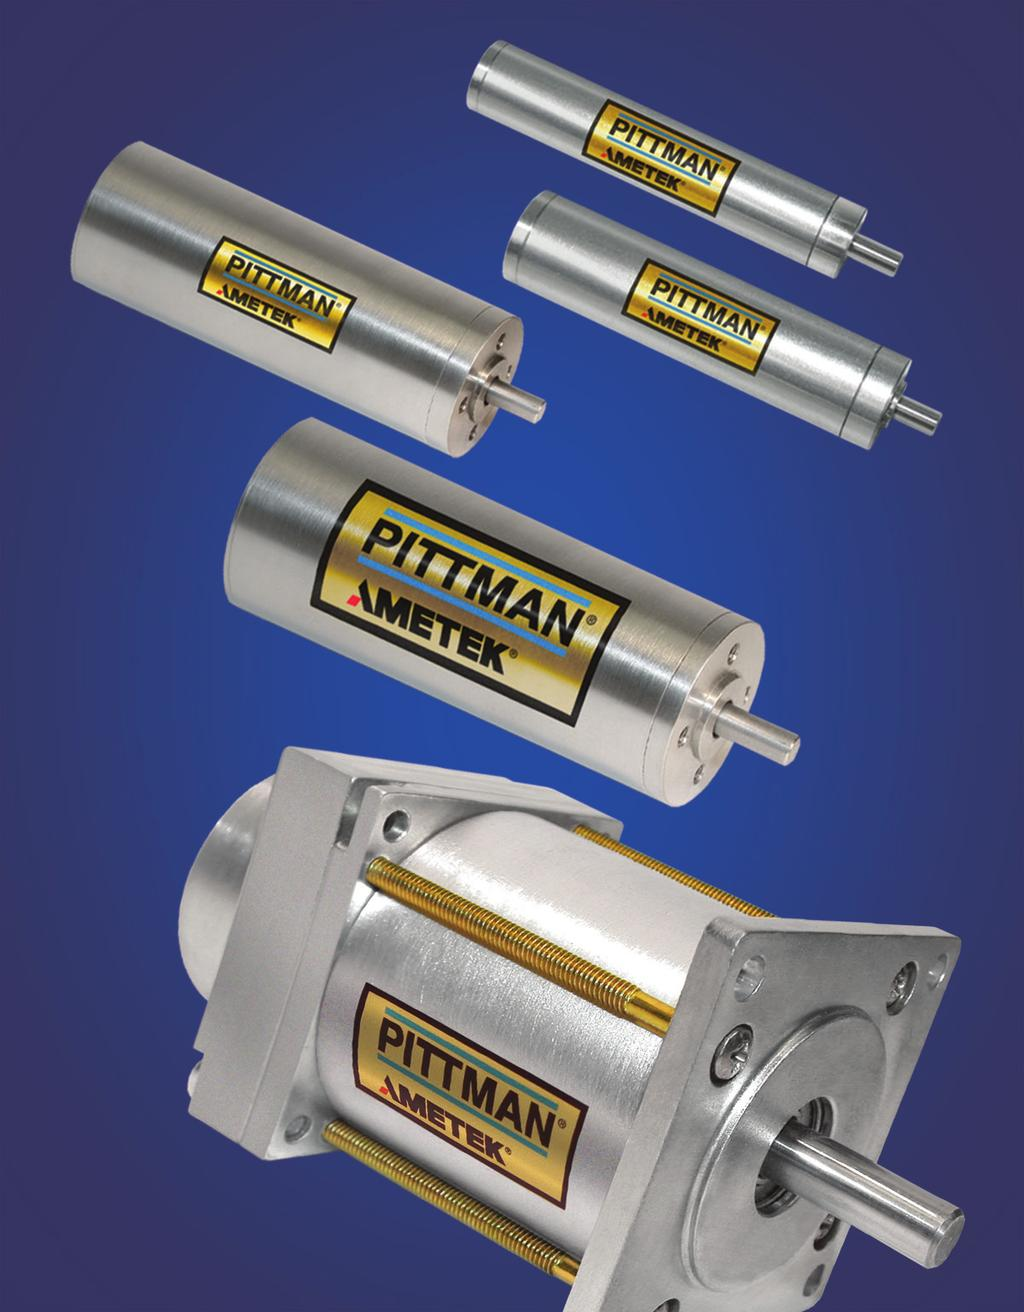 Differentiators and Options PITTMAN slotless brushless DC motors feature an offering of standard platform designs that can be customized to meet specific performance and application requirements.